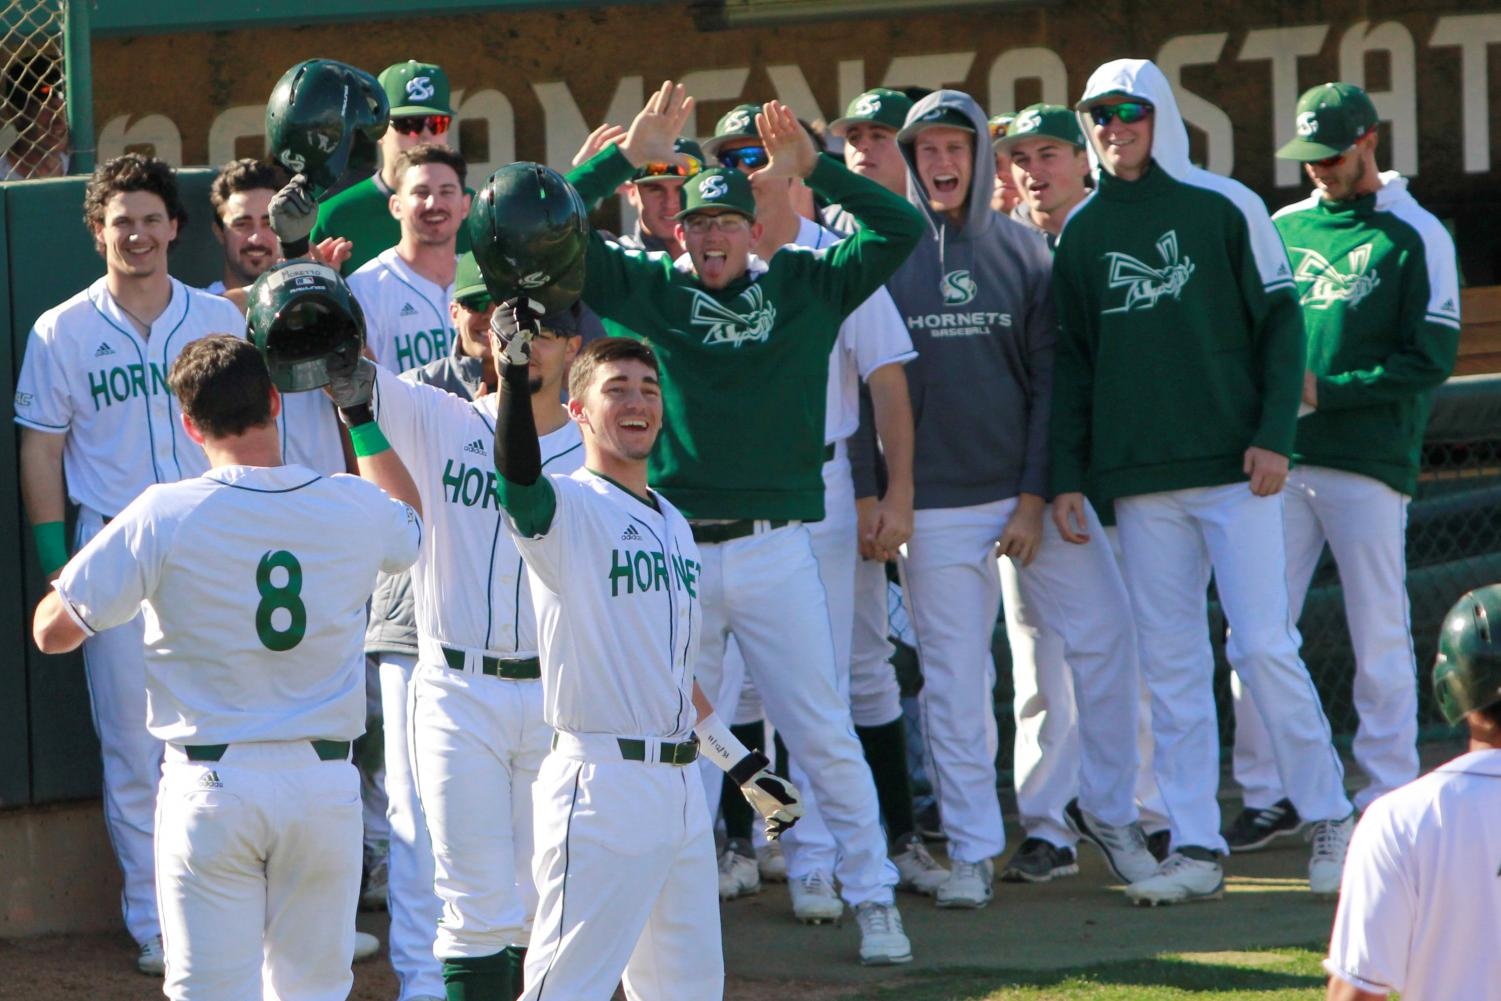 Sacramento State freshman infielder Steven Moretto, far left, celebrates with his teammates following his first home run of his career against the University of Washington at John Smith Field on Sunday, Feb. 18, 2018. The Hornets defeated the Huskies 6-0.